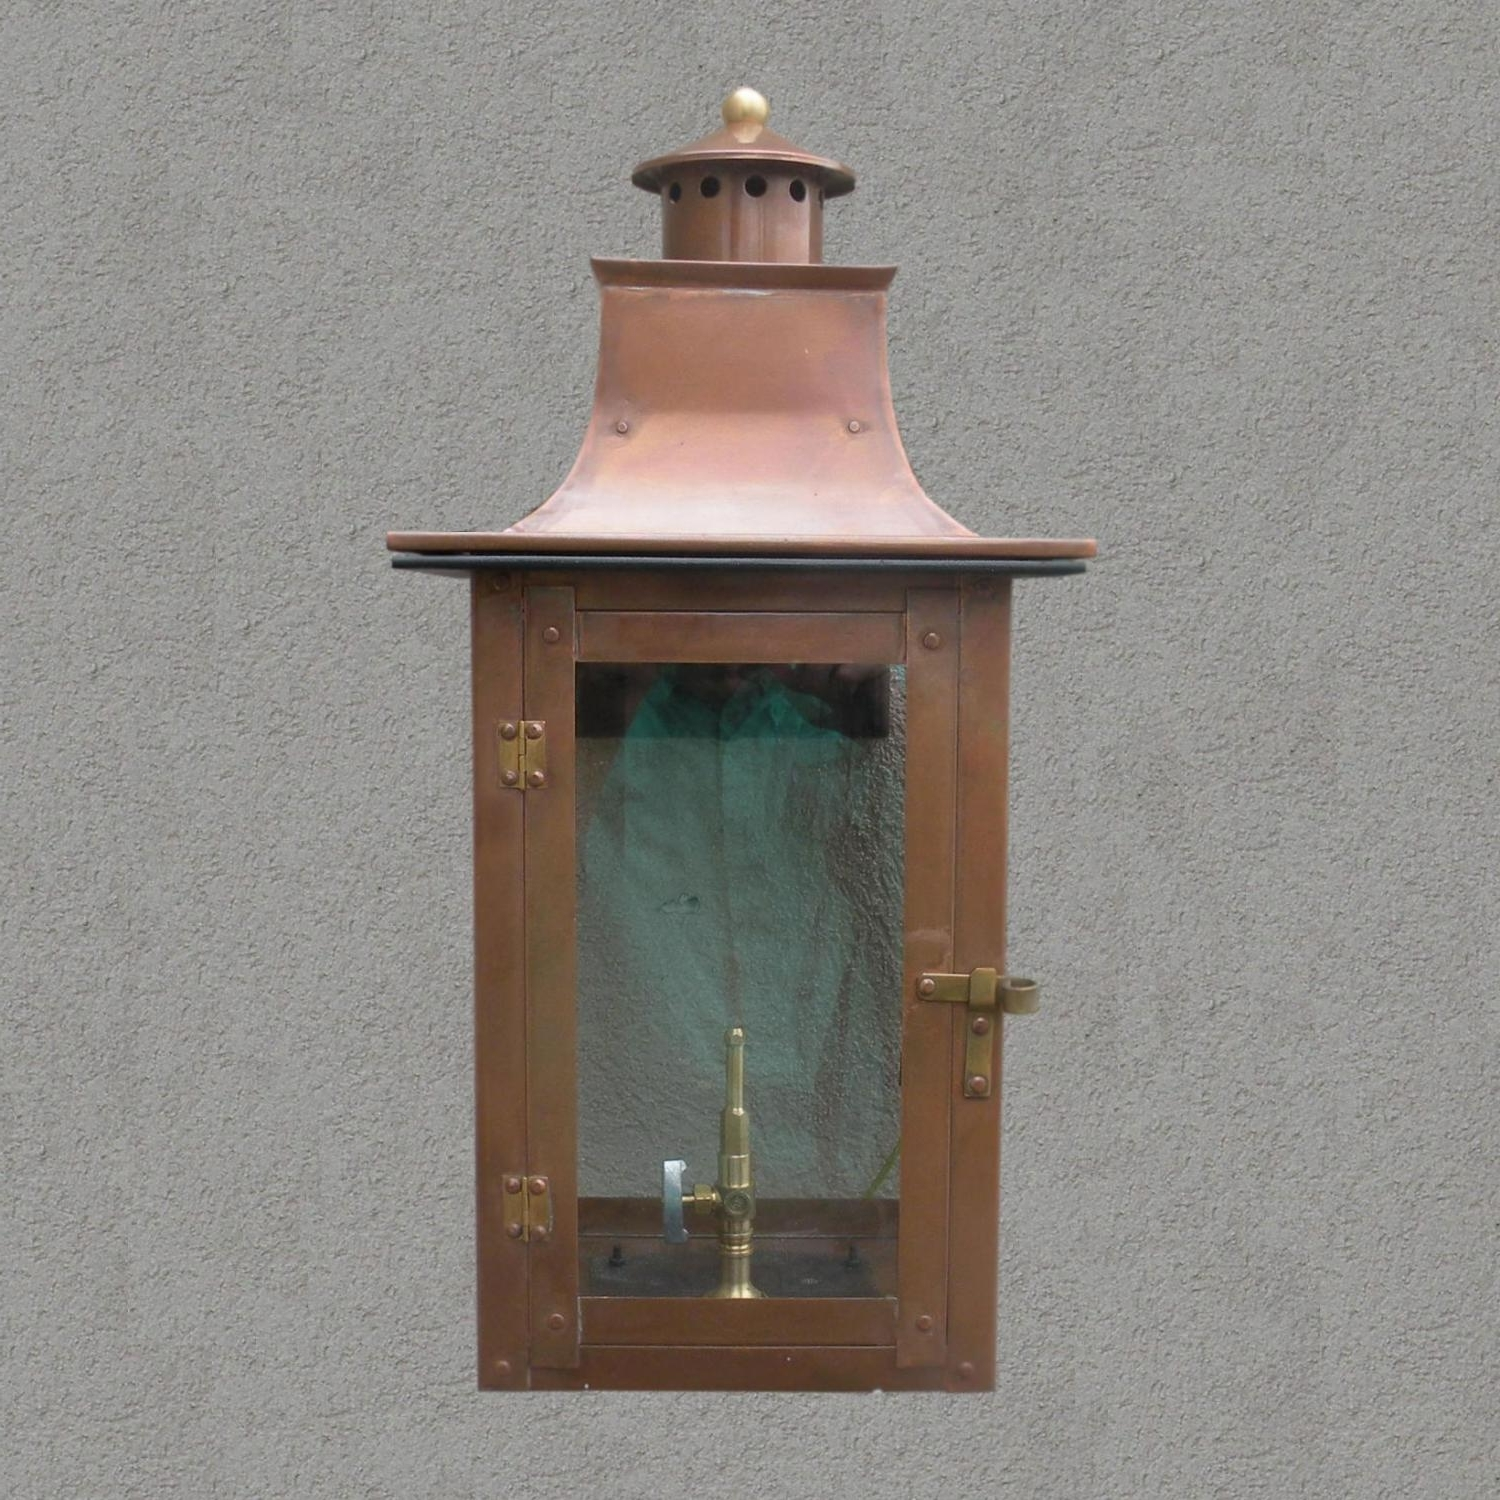 Regency Gl21 Faye Rue Small Natural Gas Light With Open Flame Burner With Regard To Latest Outdoor Wall Mount Gas Lights (View 2 of 20)